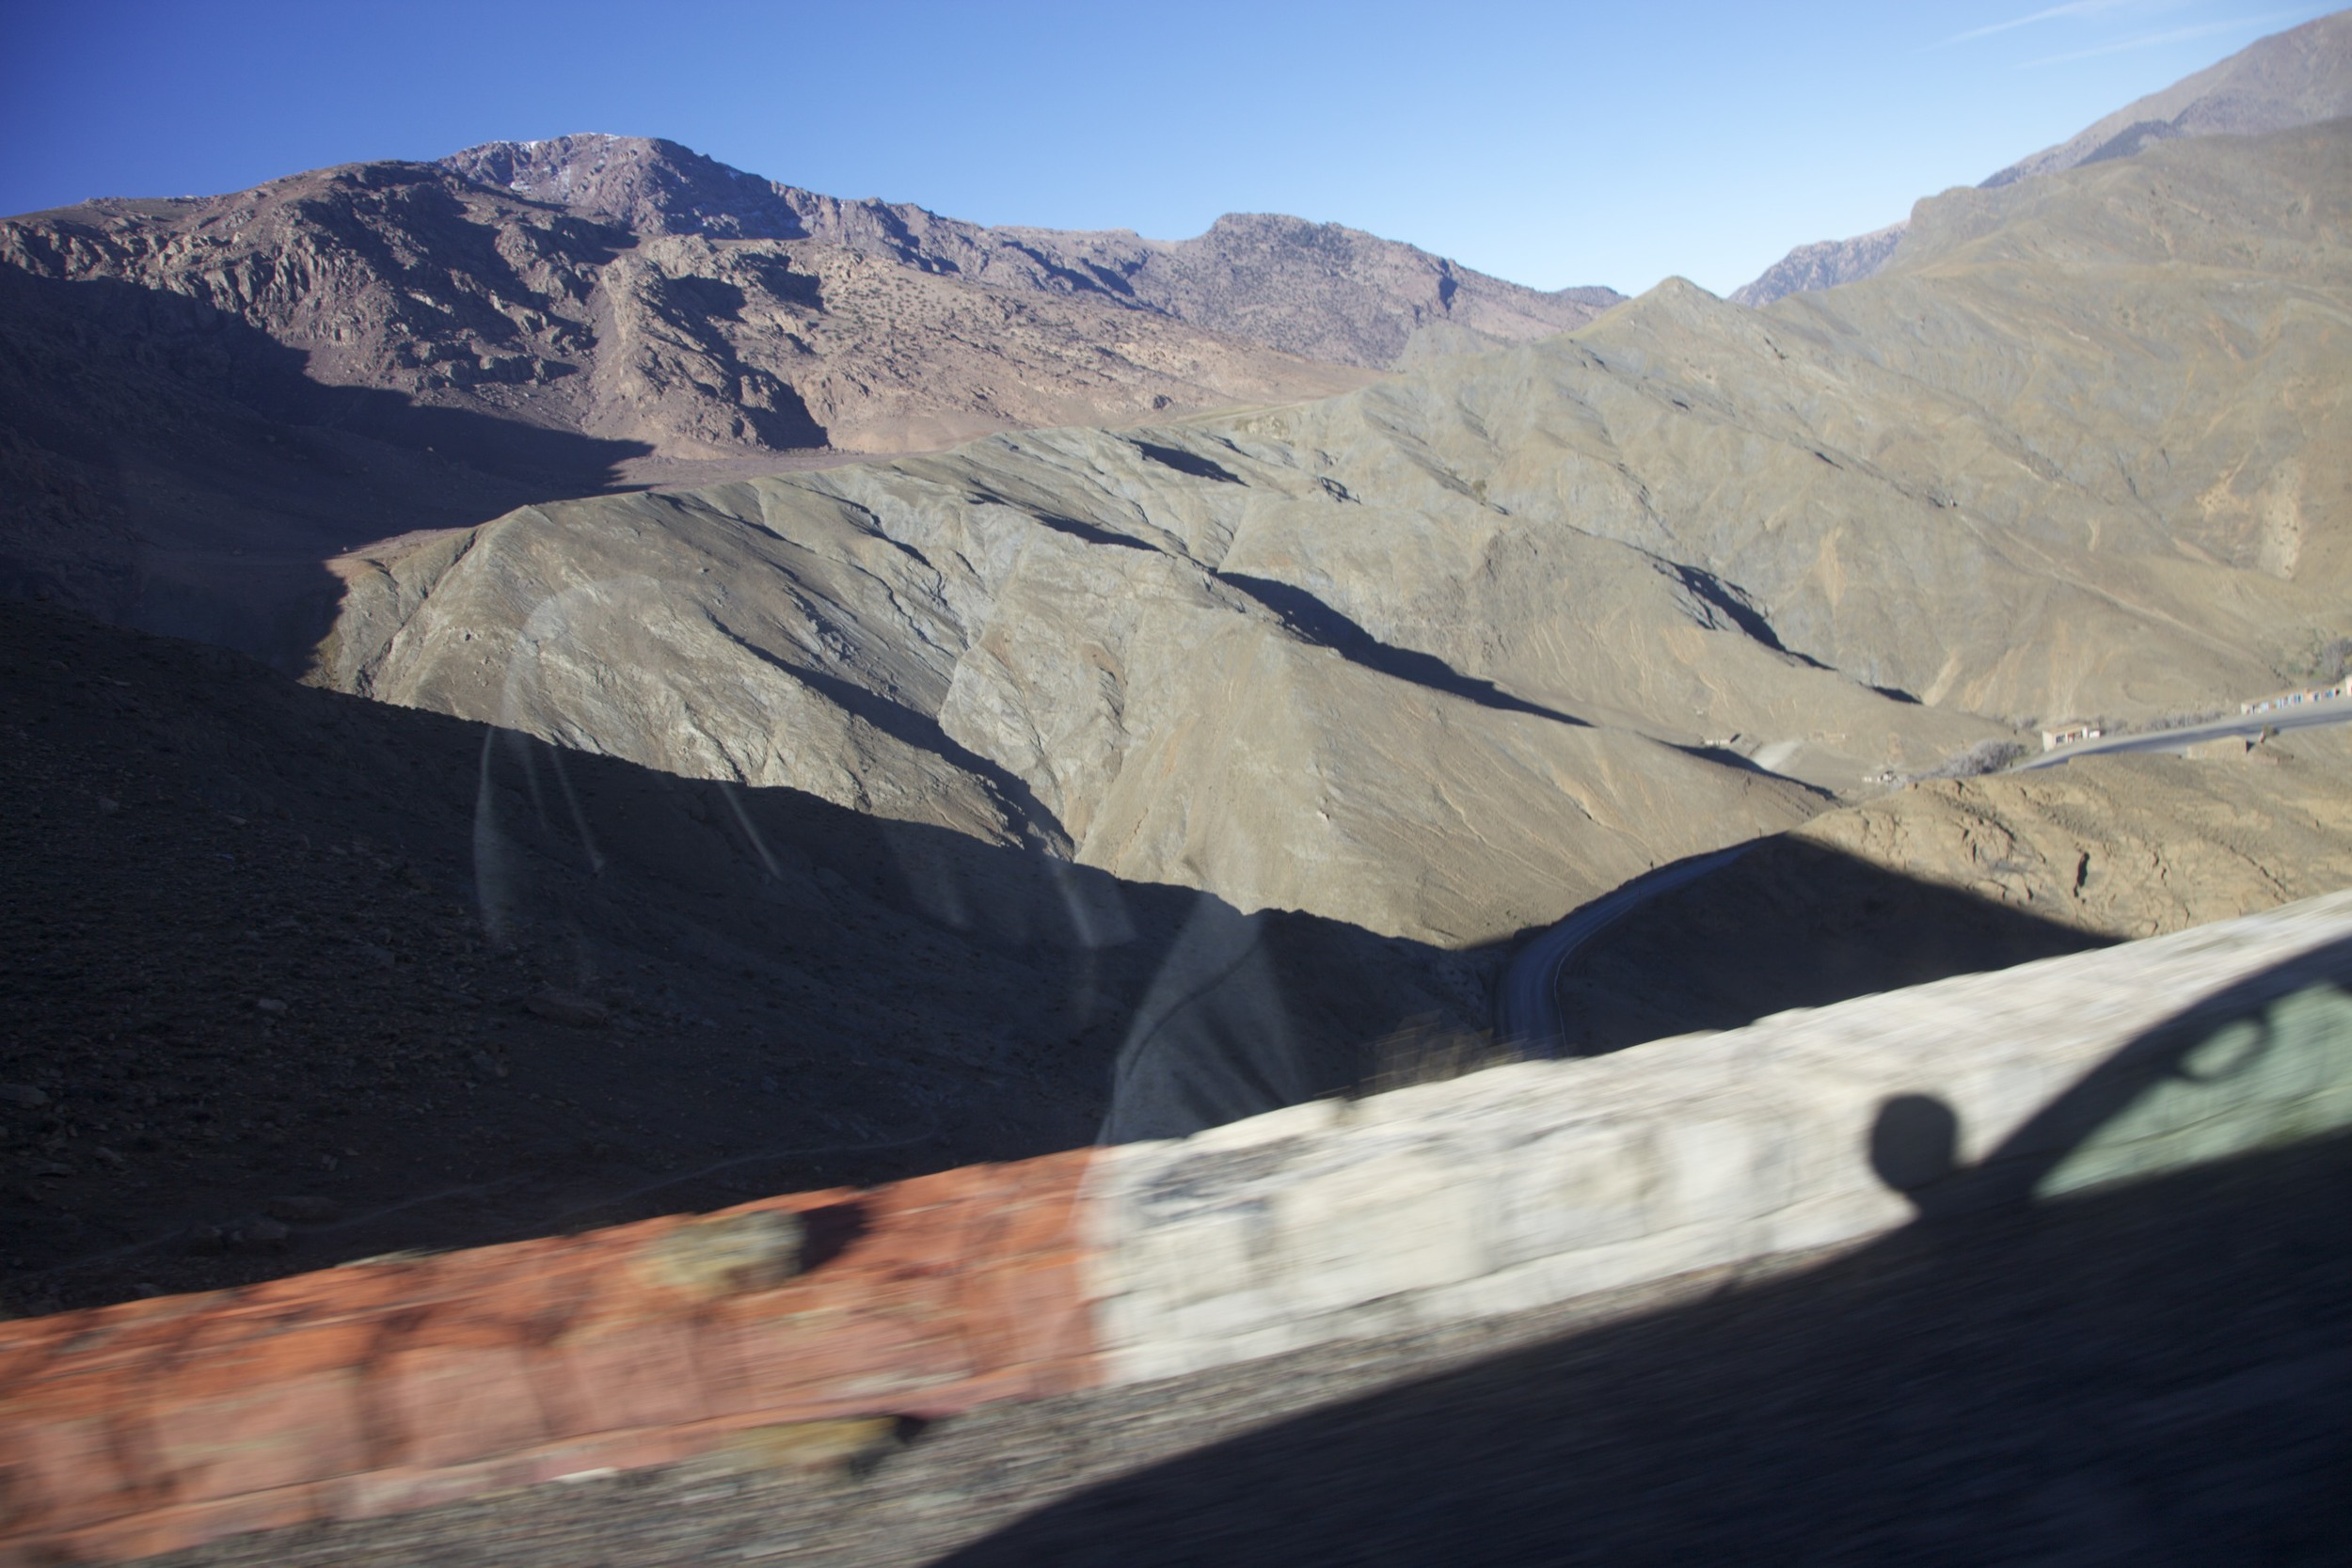 On the road from Marrakech to M'Hamid.  Note the lack of guardrail and sheer 200 foot drop.